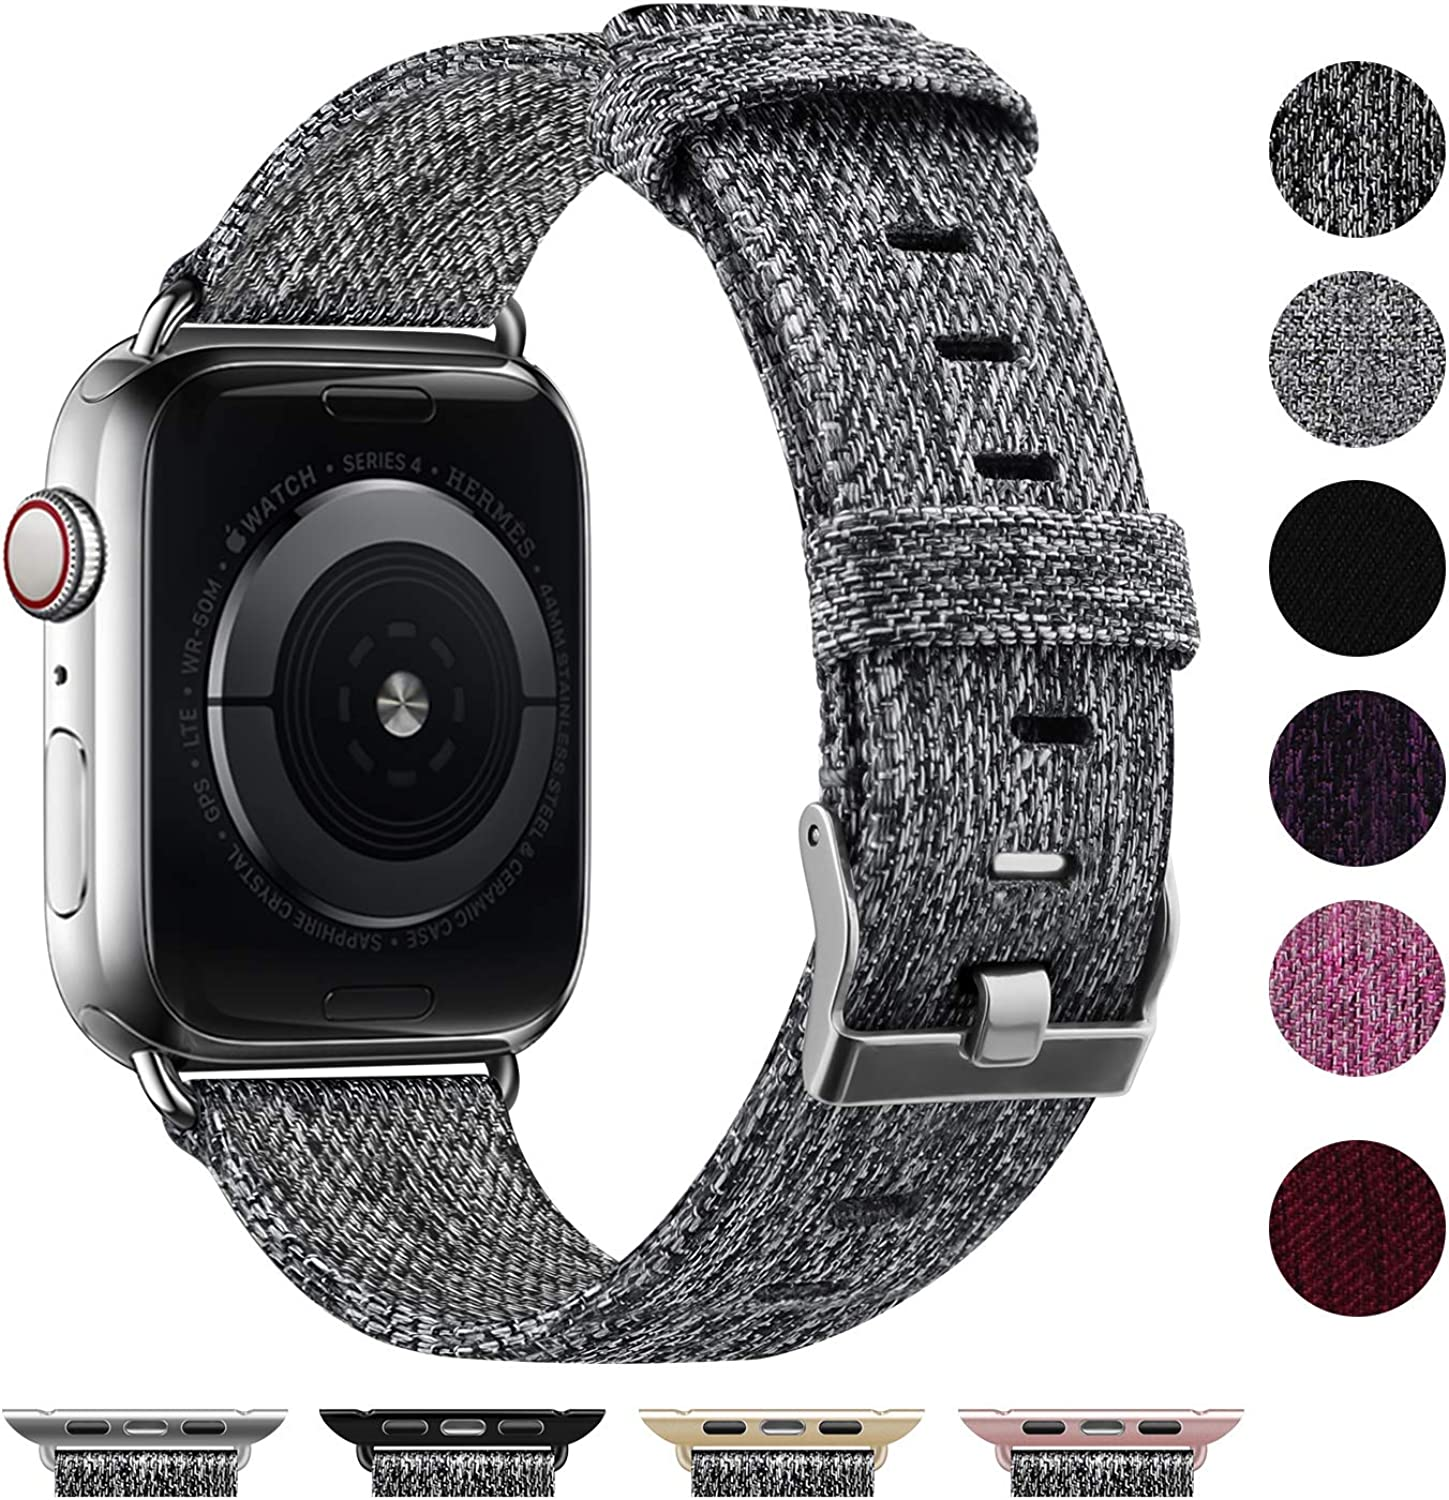 Vitty Woven Fabric Band Compatible with Apple Watch 38mm 40mm 42mm 44mm for Women Men, Soft Woven Fabric Replacement Band, Adjustable Wristband for iWatch Series 5, 4, 3, 2, 1